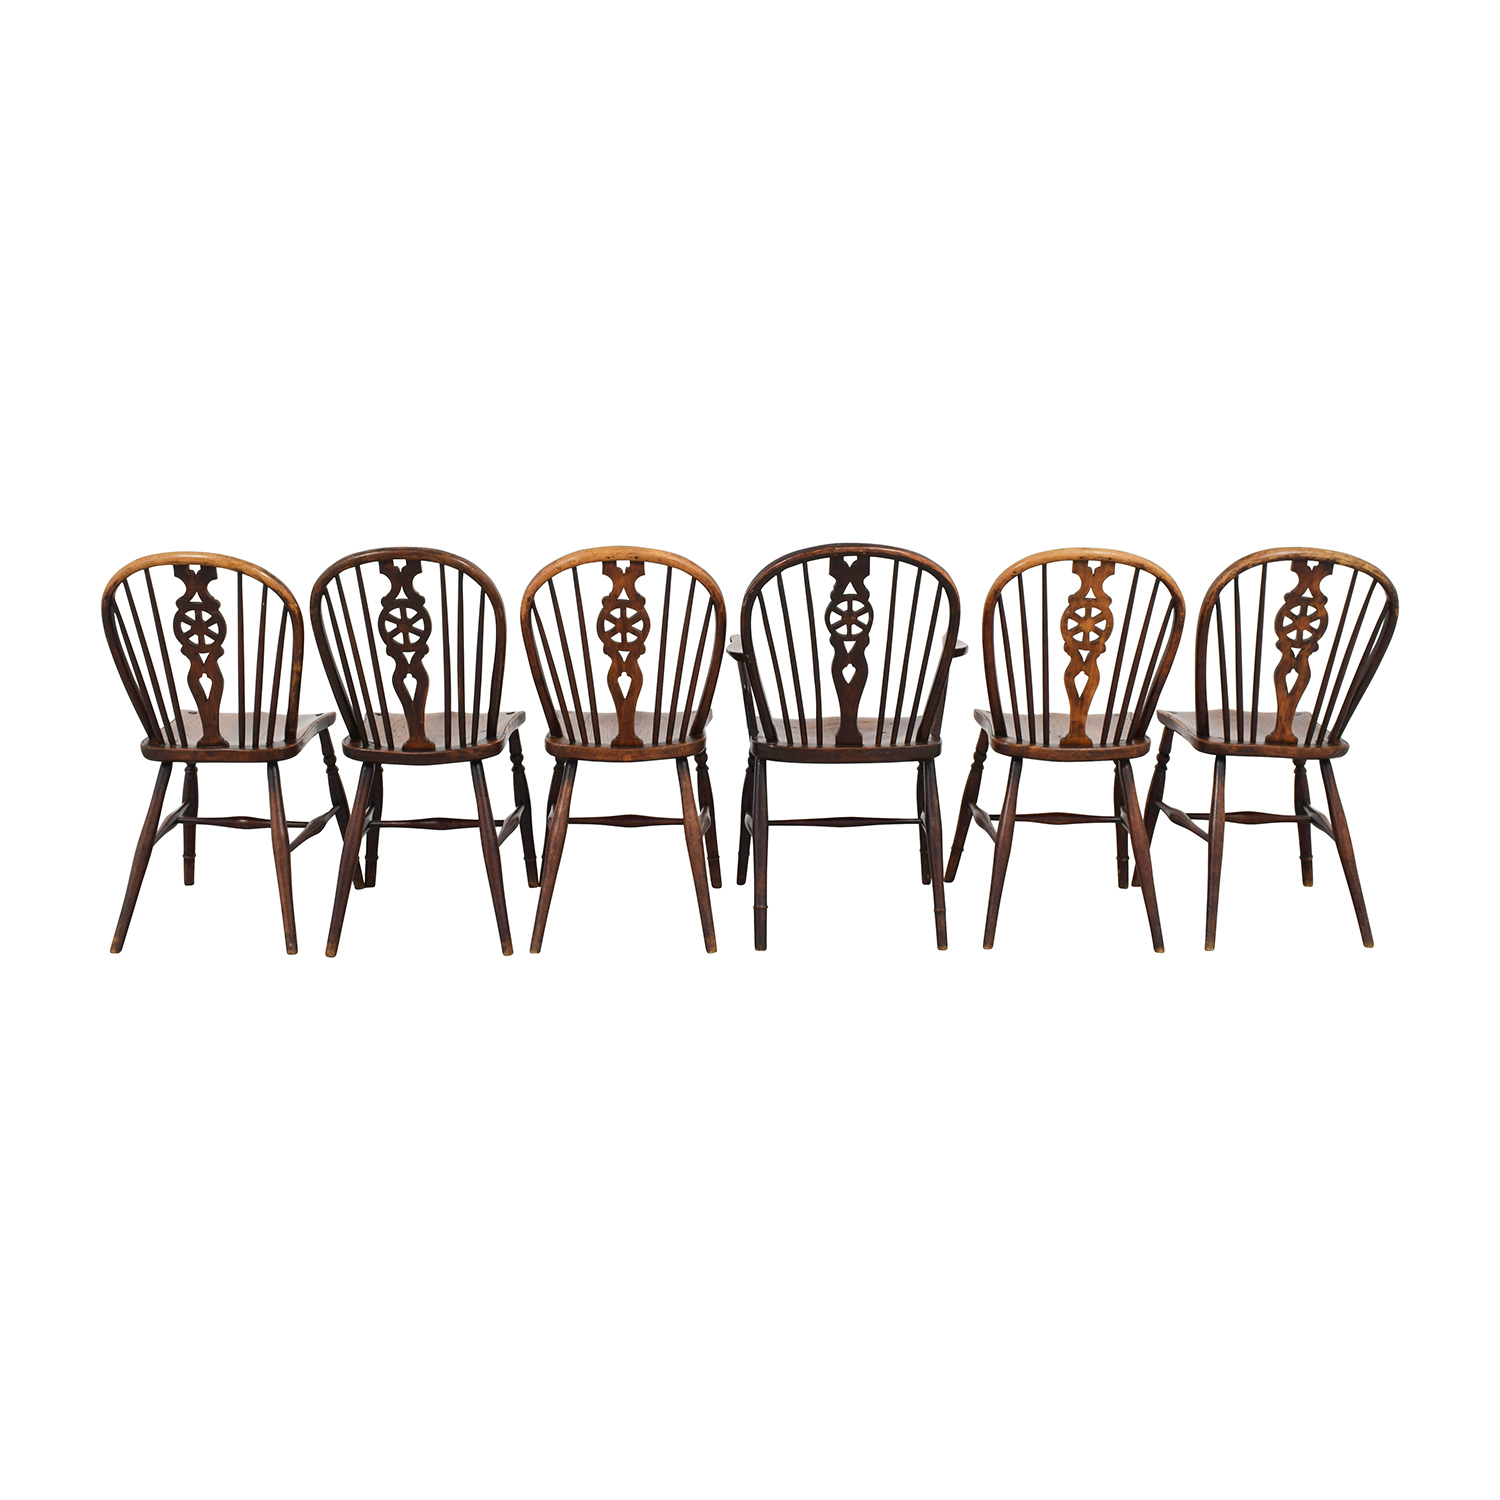 Tim Wharton Antiques Tim Wharton Antiques Georgian Windsor Chairs coupon